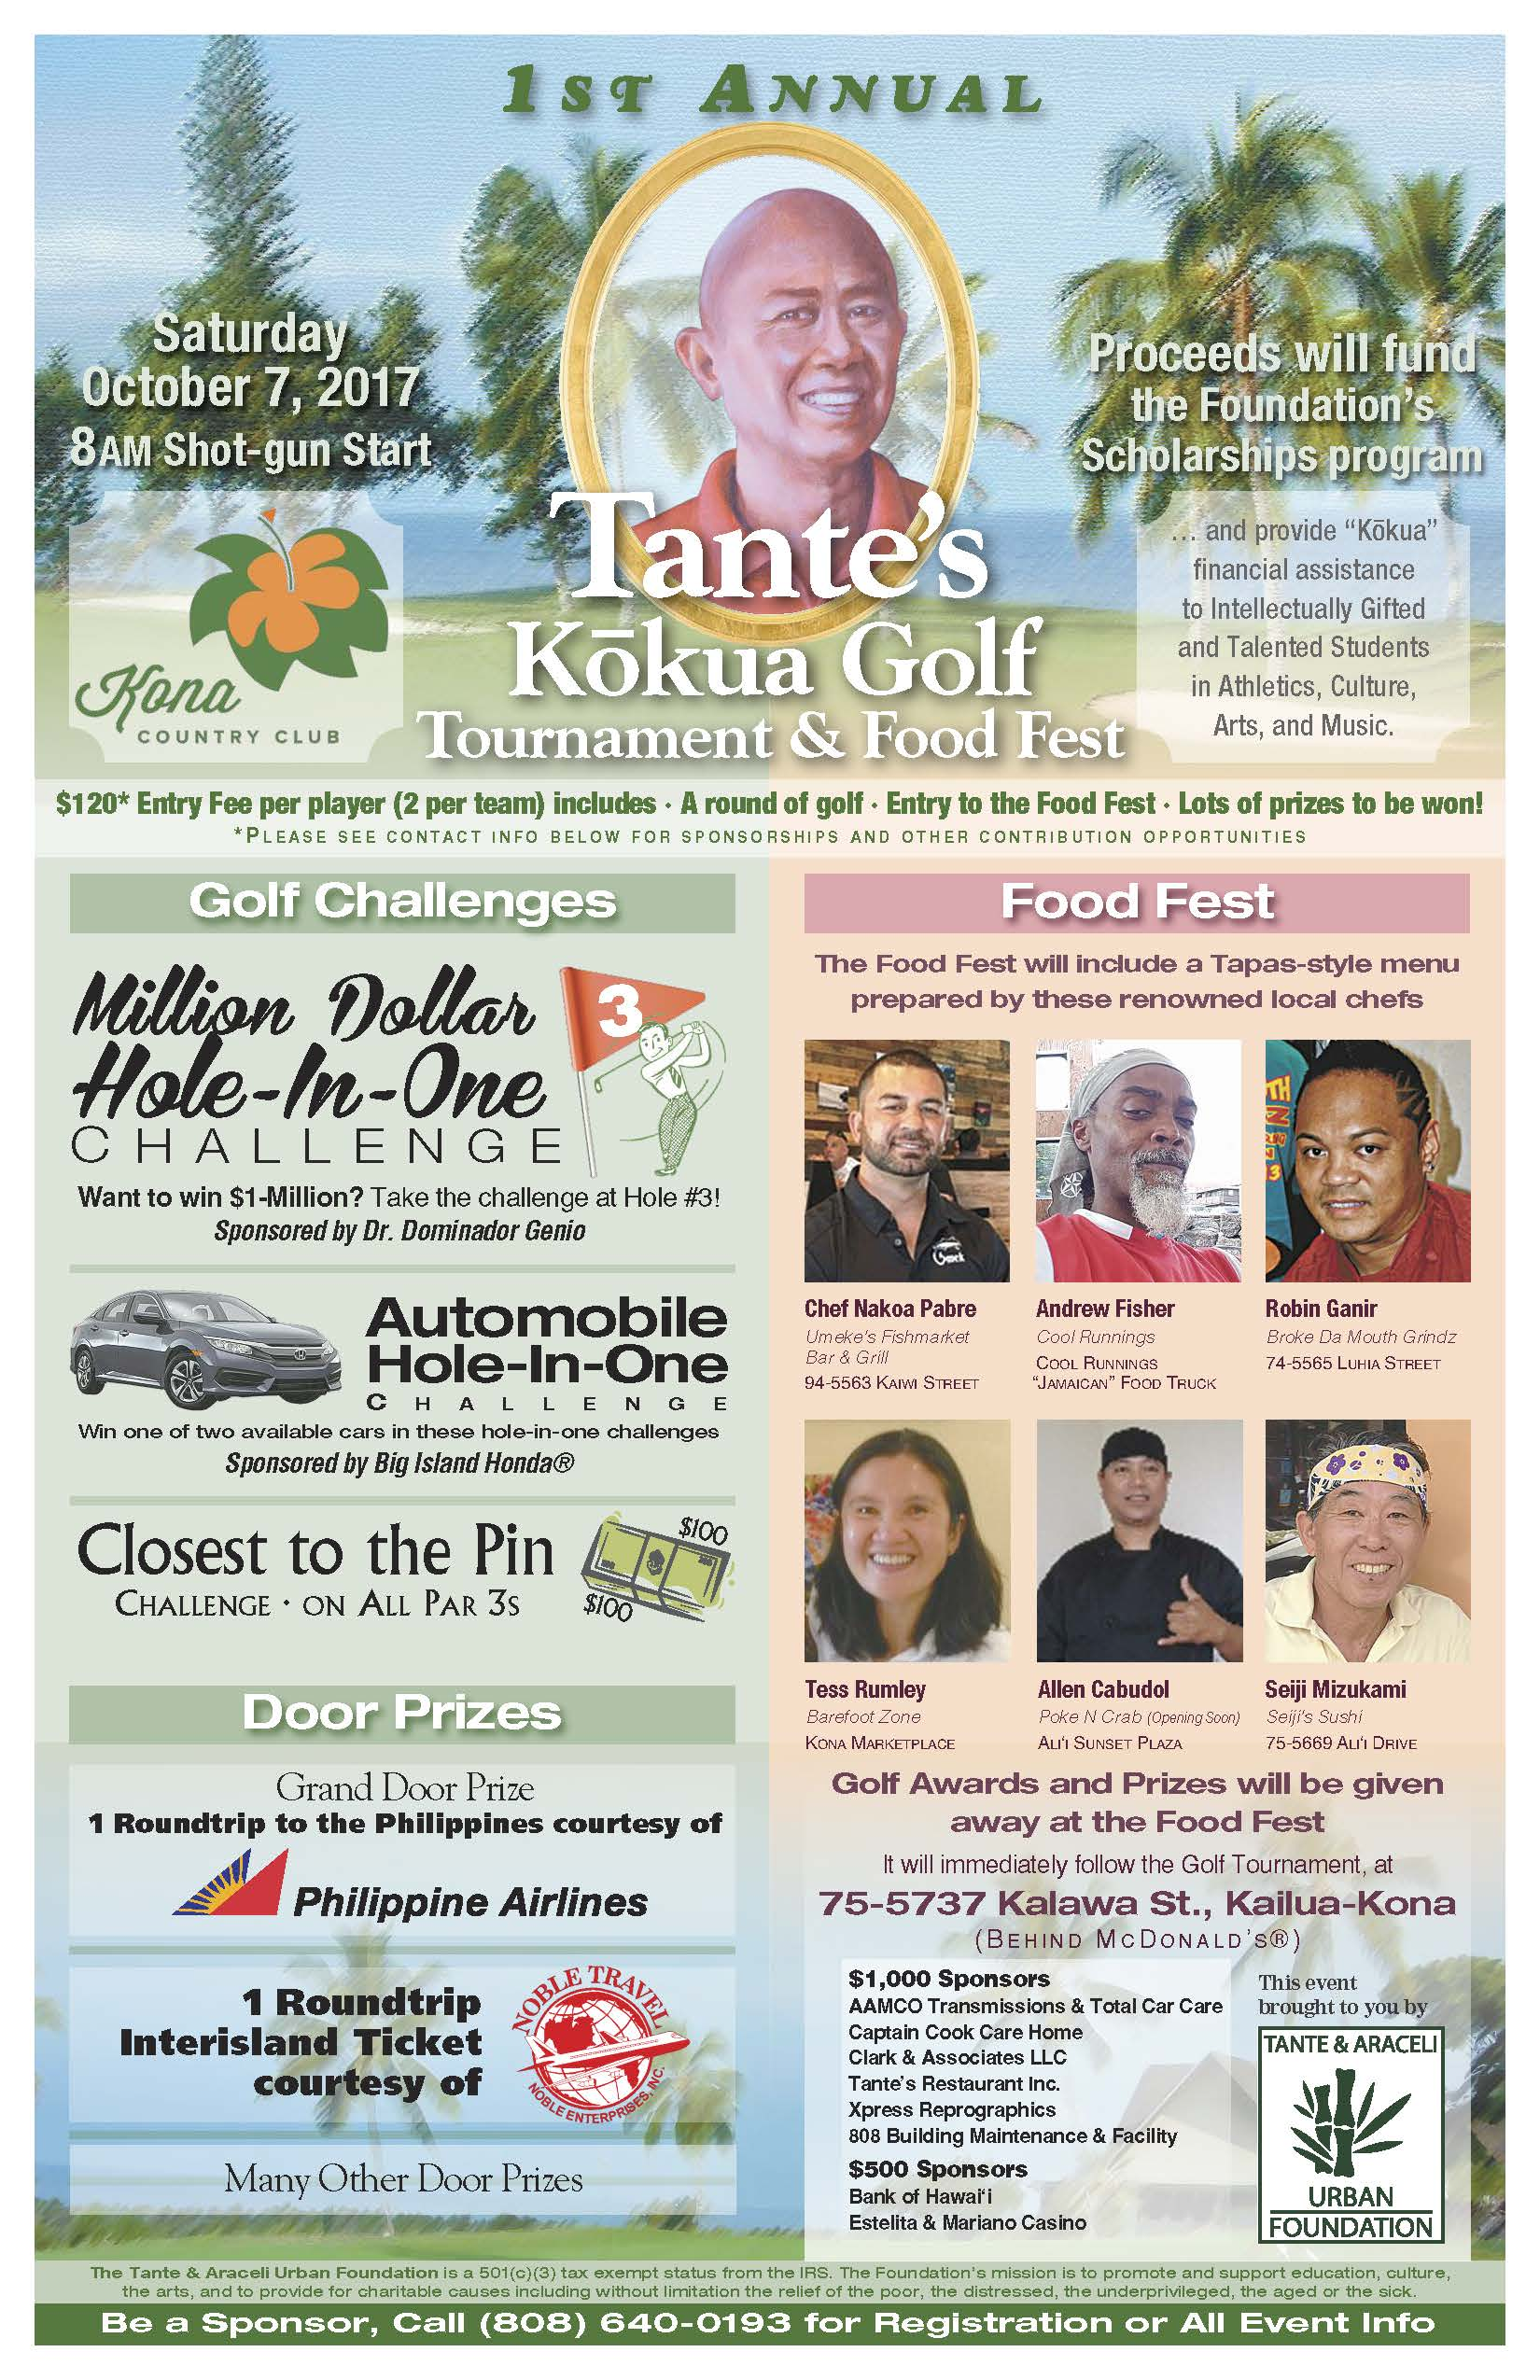 Tante and Ariceli Urban Foundation 1st Annual Golf Tournament